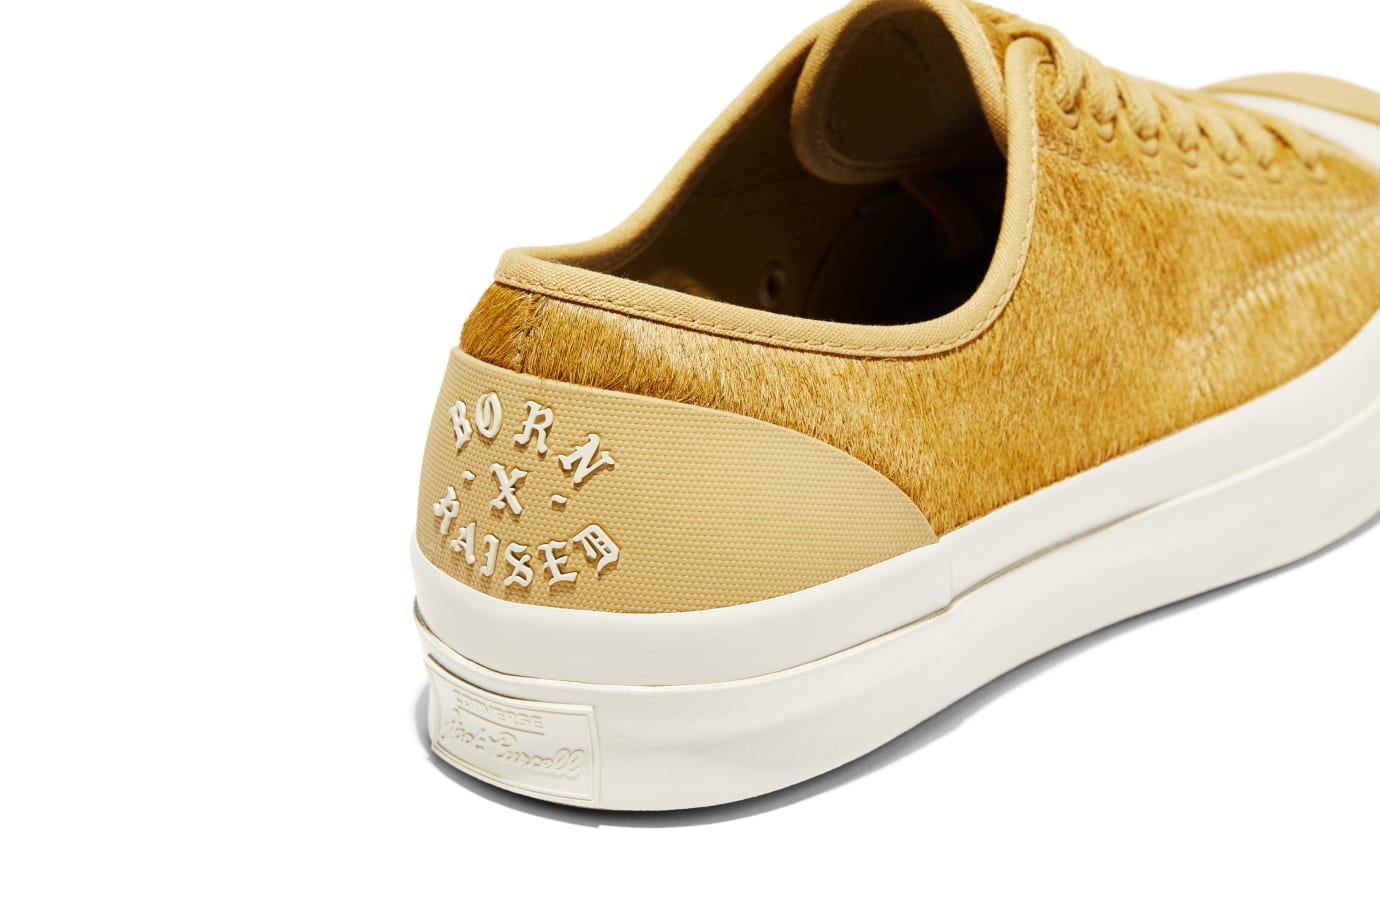 BornxRaised x Converse Jack Purcell 'Camel' (Heel 2)